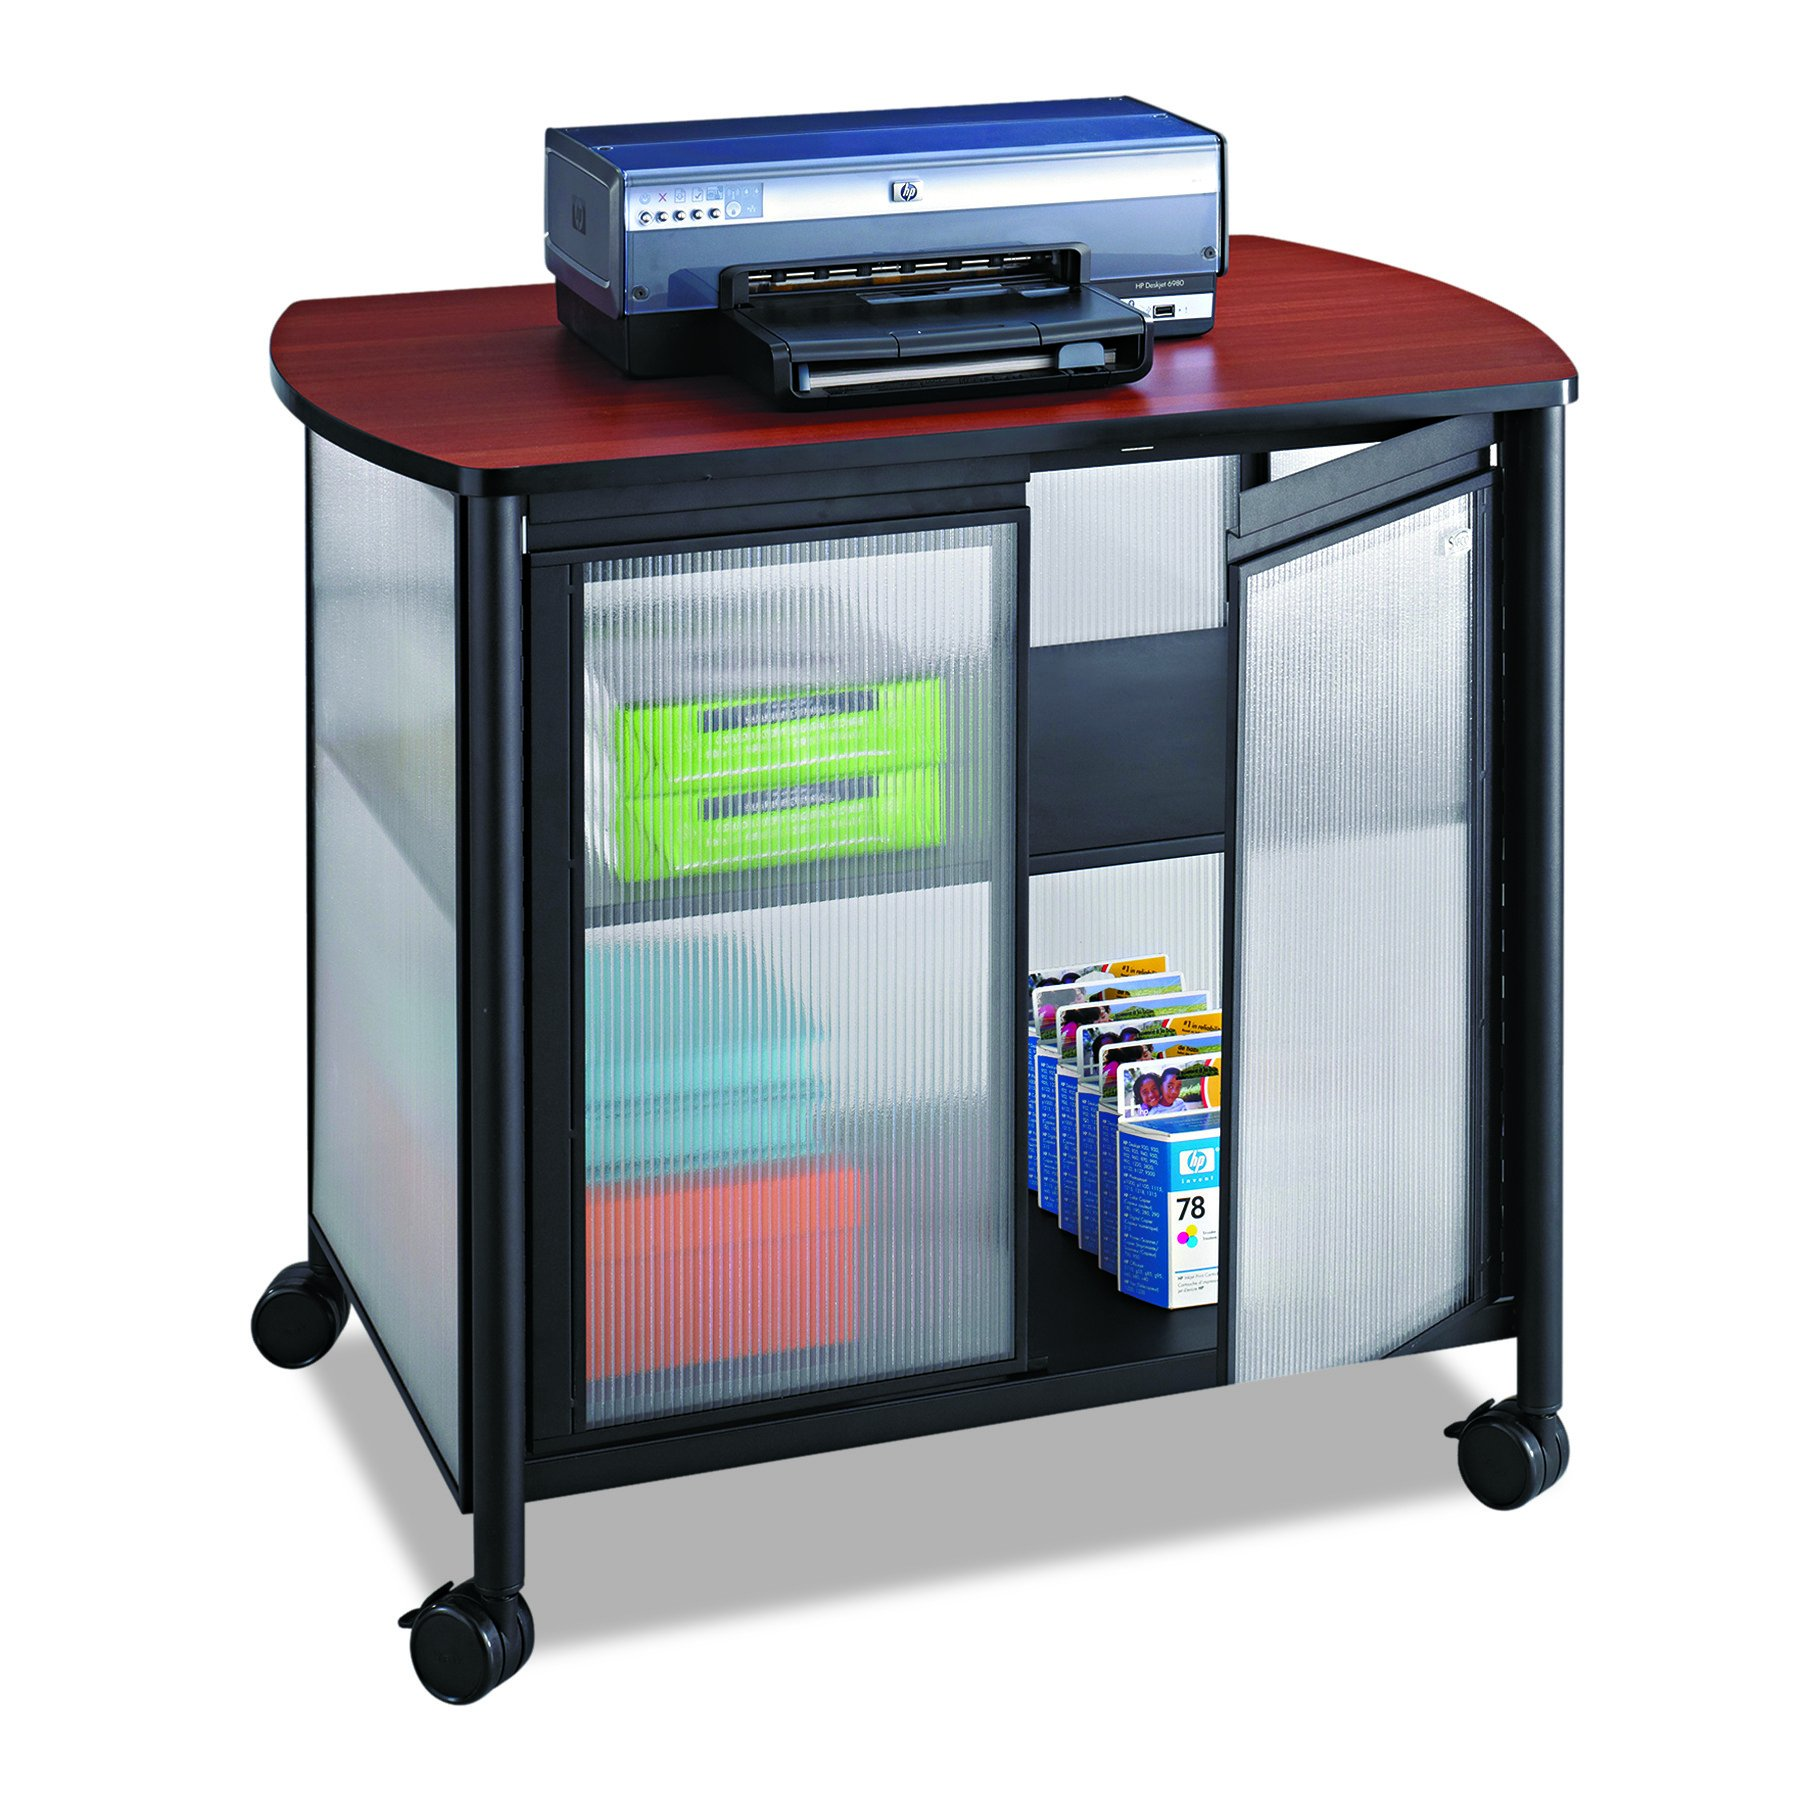 Safco Products Impromptu Mobile Print Stand with Doors 1859BL, Cherry Top/Black Frame , 200 lbs. Capacity, Contemporary Design, Swivel Wheels by Safco Products